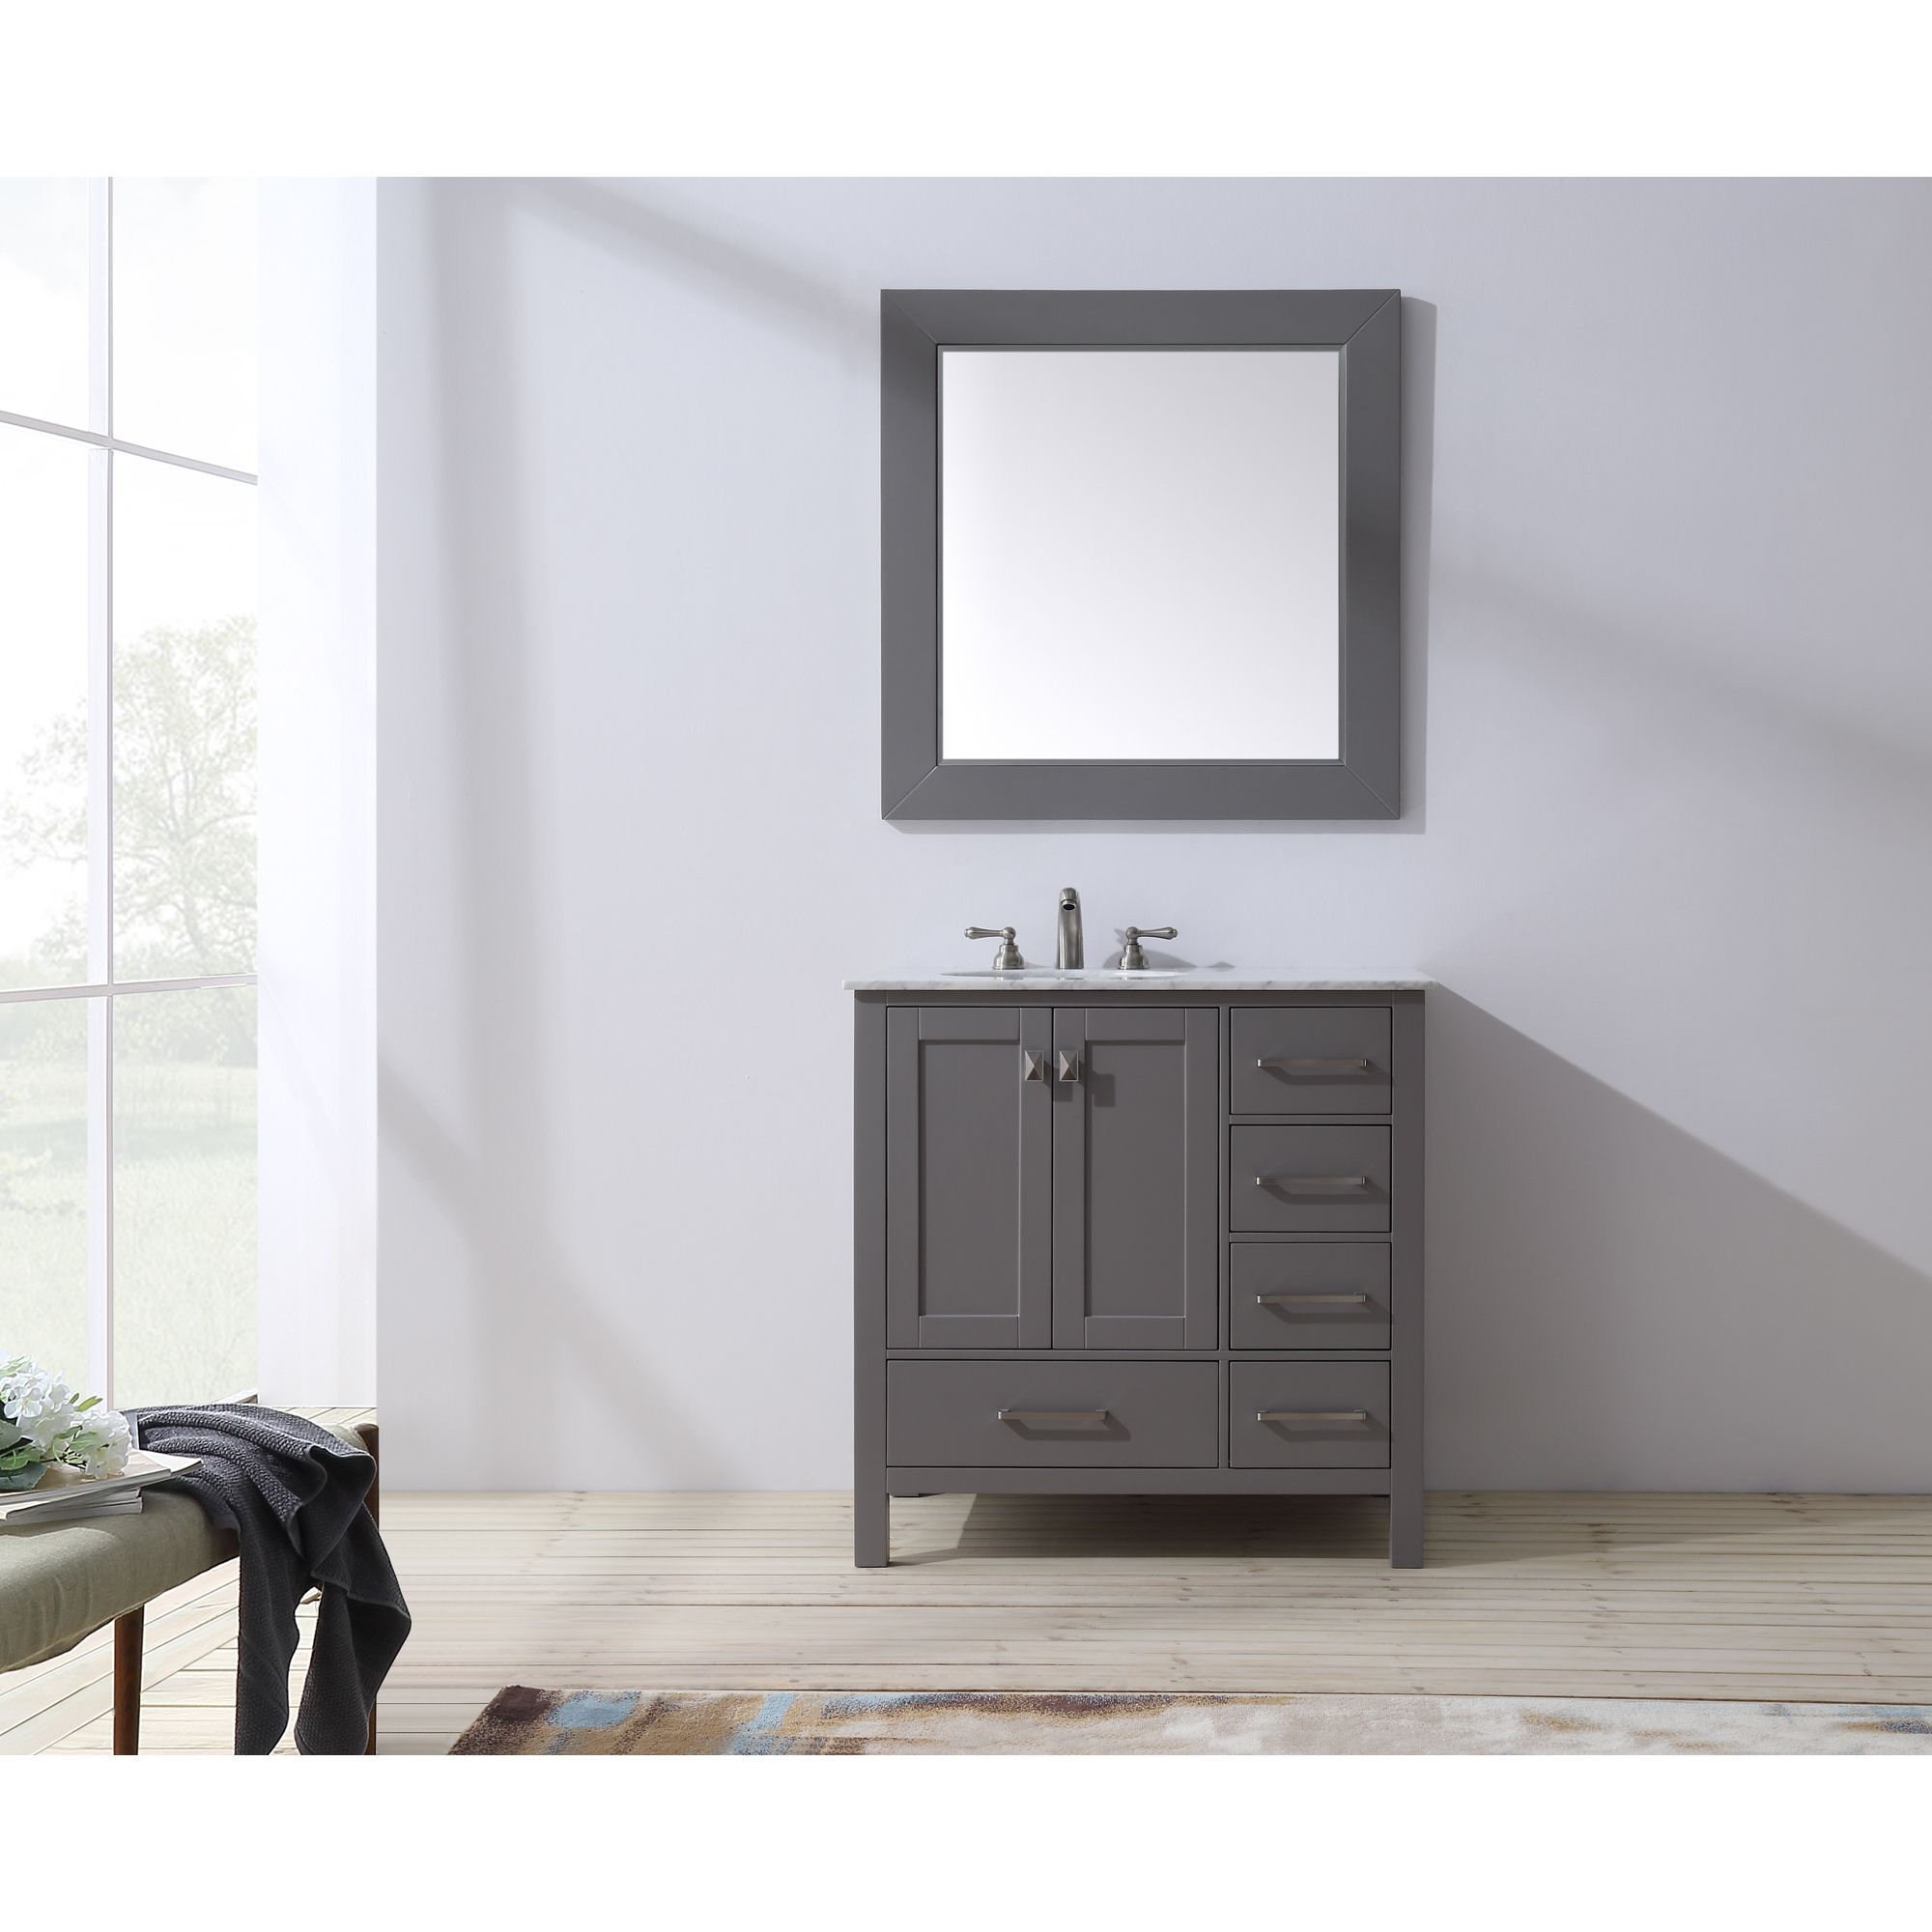 An ideal complement to a contemporary decor, the 36 inch Malibu Single Sink Vanity embodies the clean edges and sophistication of modern design. The rich grey cabinet, made of solid oak lends a warm f...